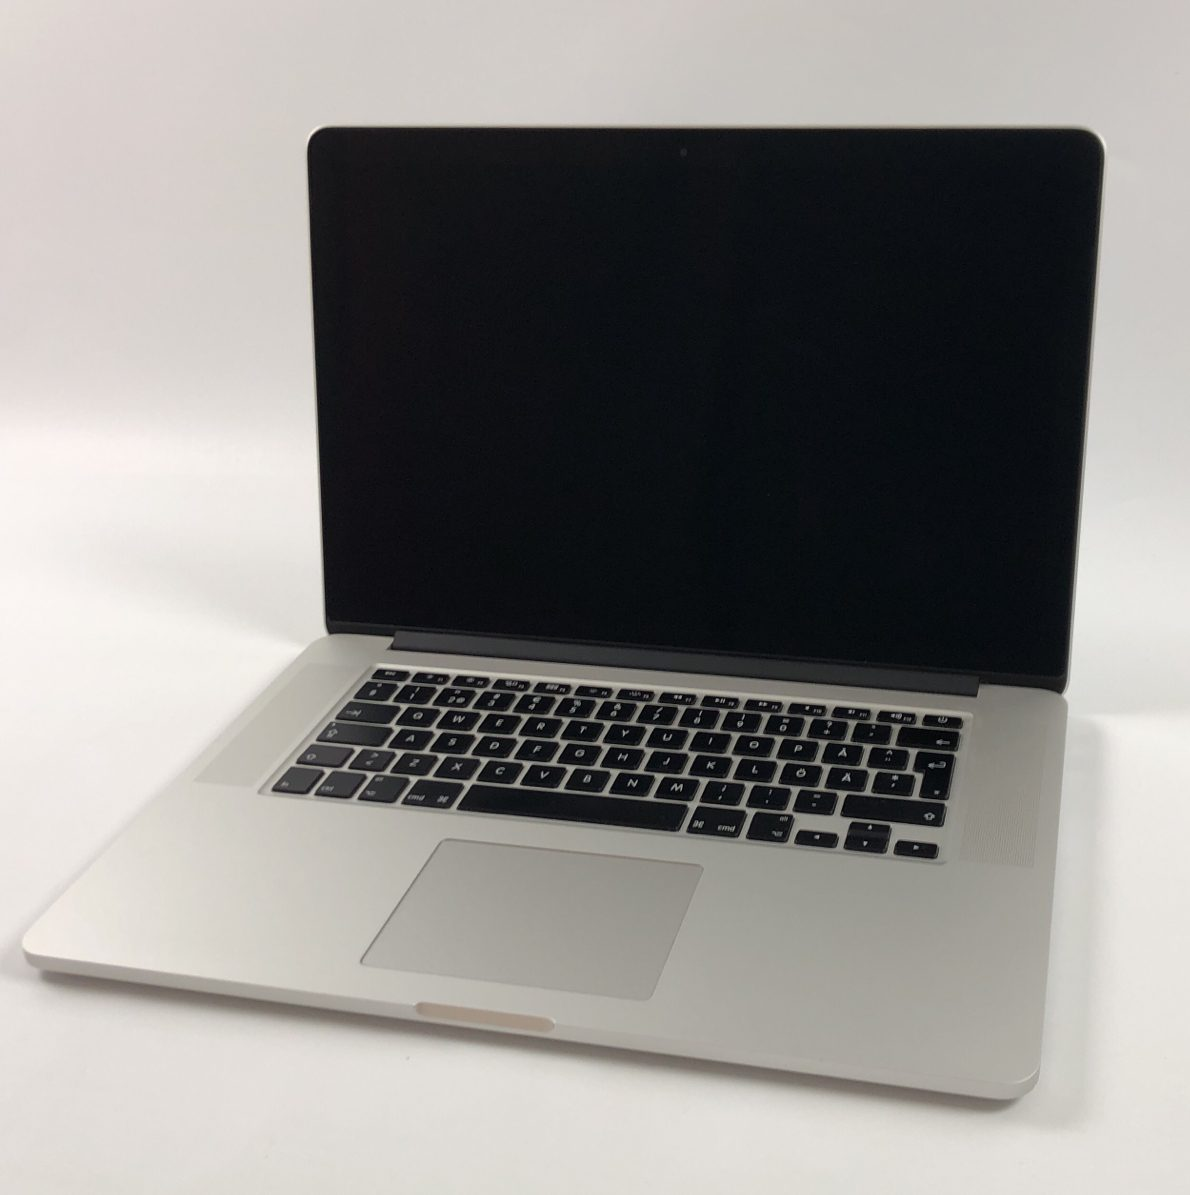 "MacBook Pro Retina 15"" Mid 2015 (Intel Quad-Core i7 2.2 GHz 16 GB RAM 256 GB SSD), Intel Quad-Core i7 2.2 GHz, 16 GB RAM, 256 GB SSD, Kuva 1"